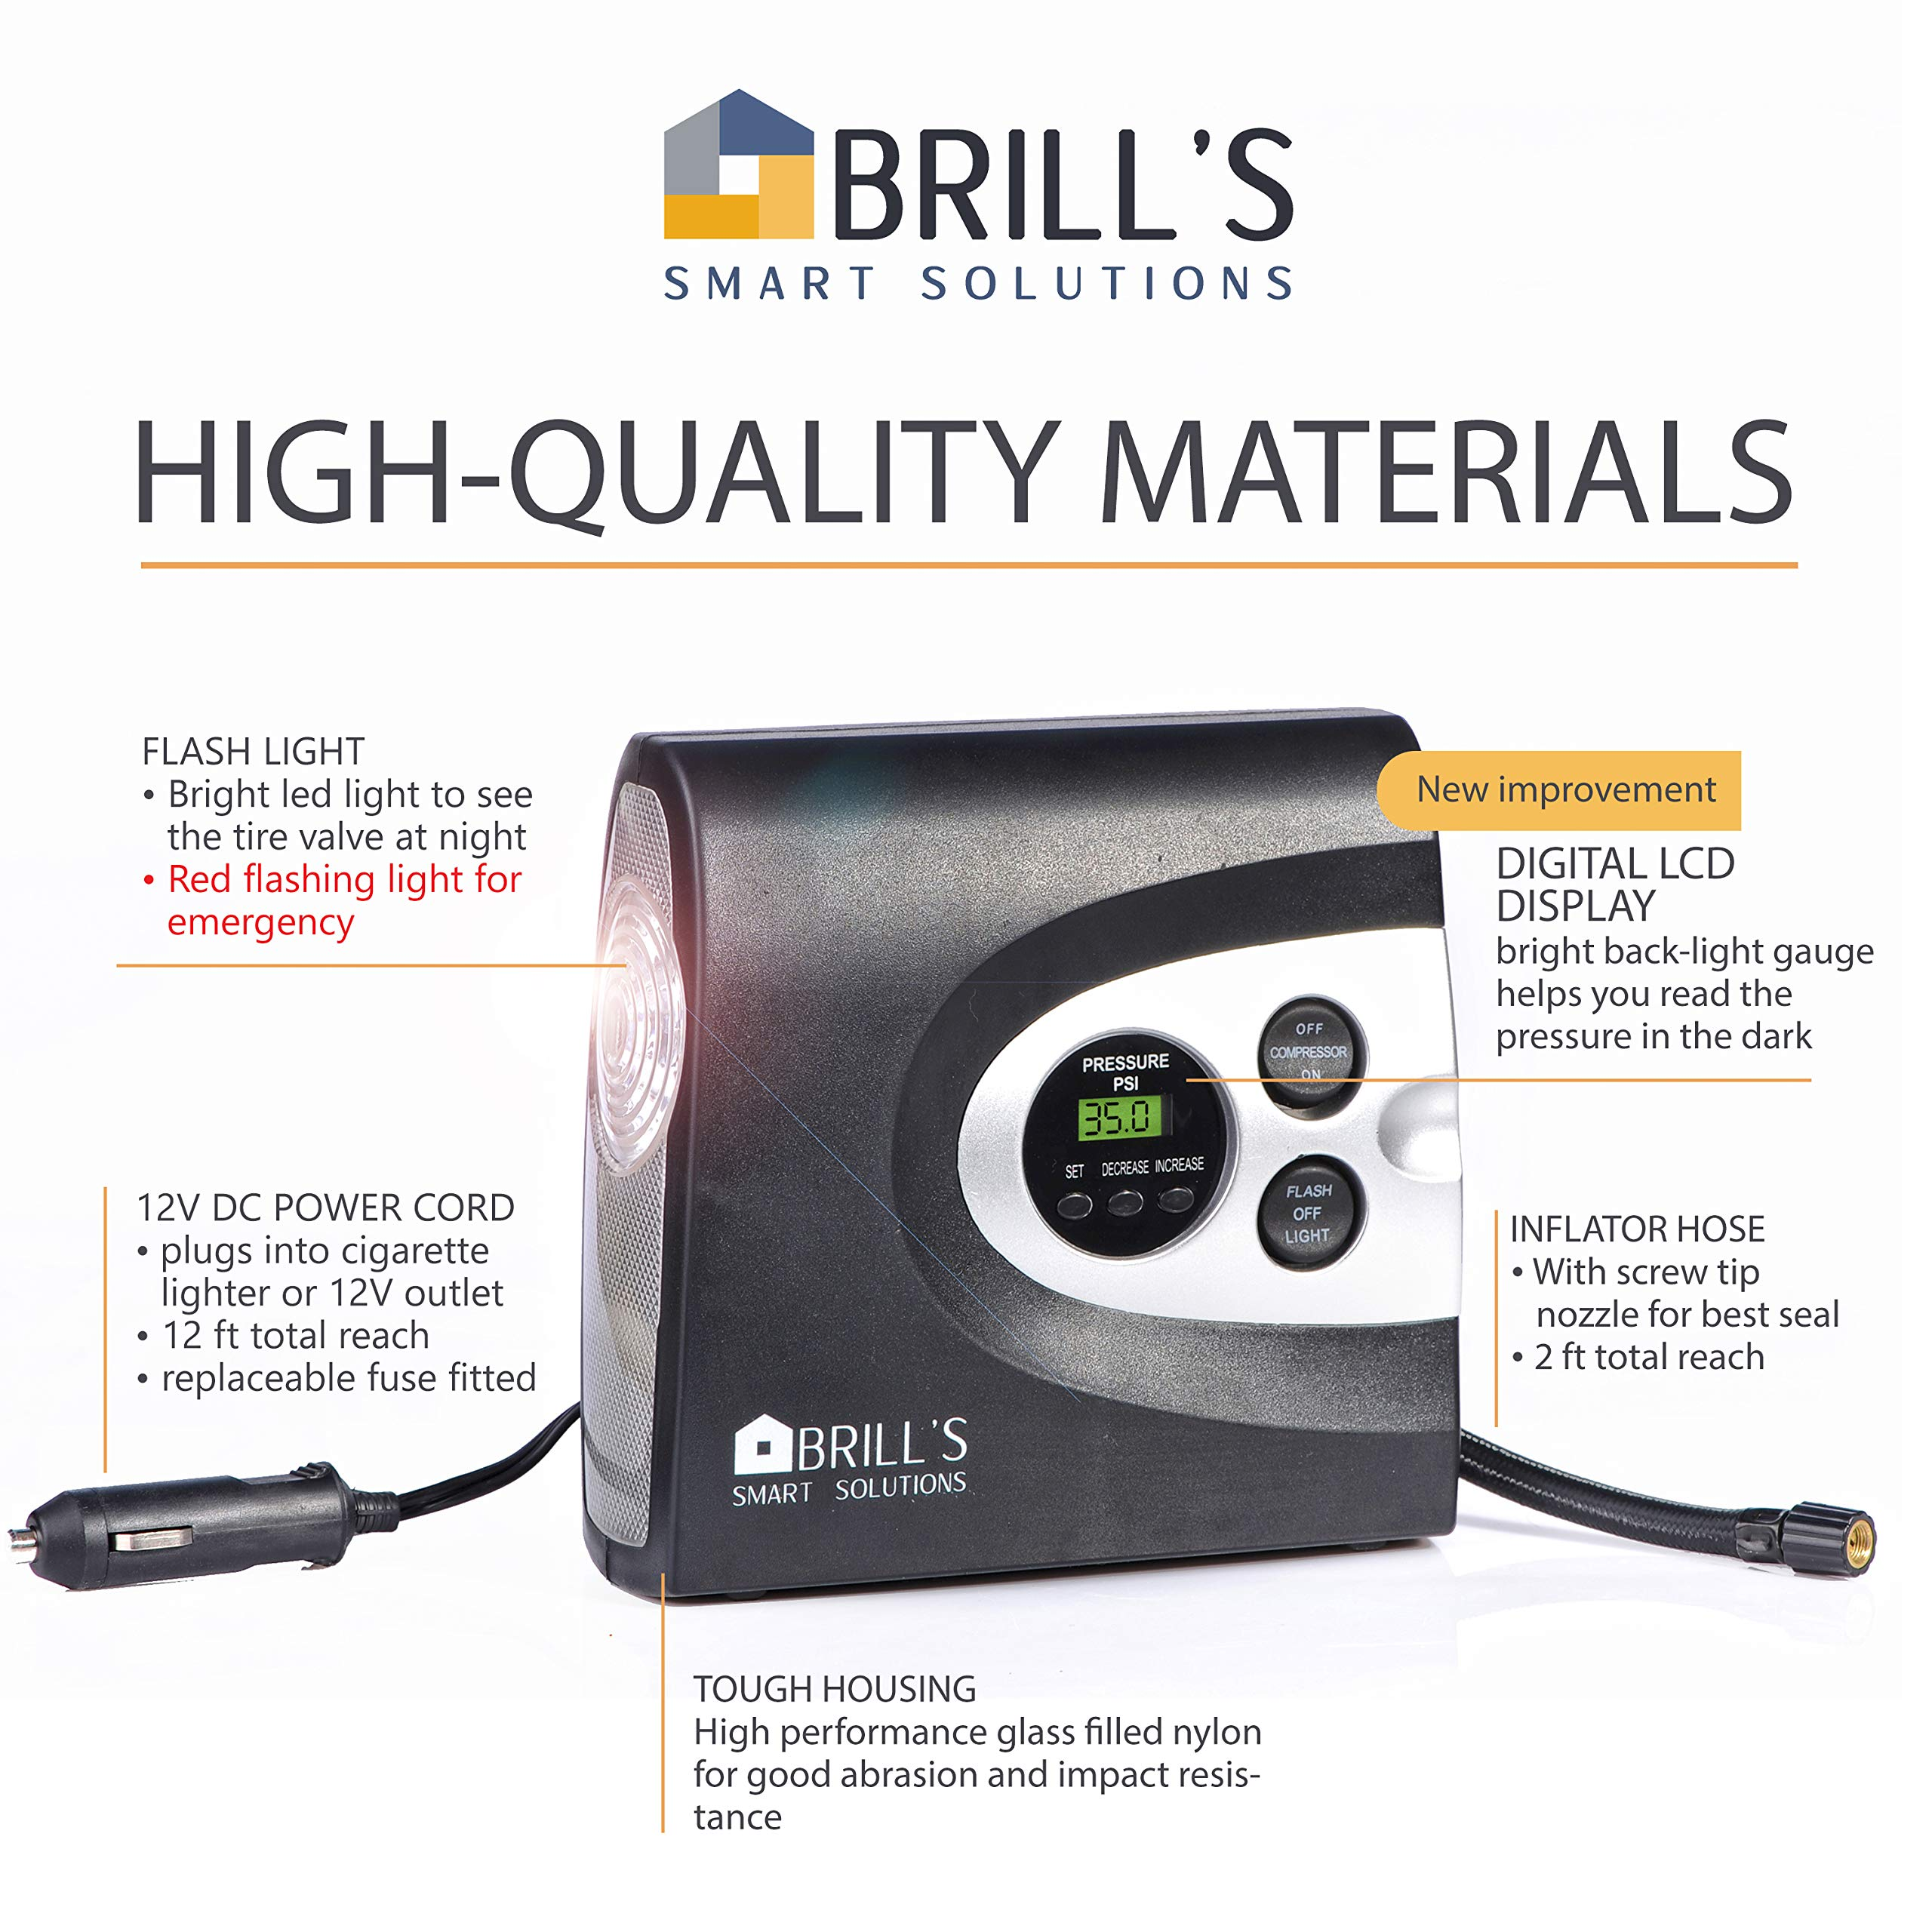 BRILL'S 12V DC Portable Tire Inflator Pump, 150 Psi Electric Air Compressor for Cars, Bikes, Motorcycles and Balls. Carry Case and USB Car Charge Included by BRILL'S SMART SOLUTIONS (Image #6)